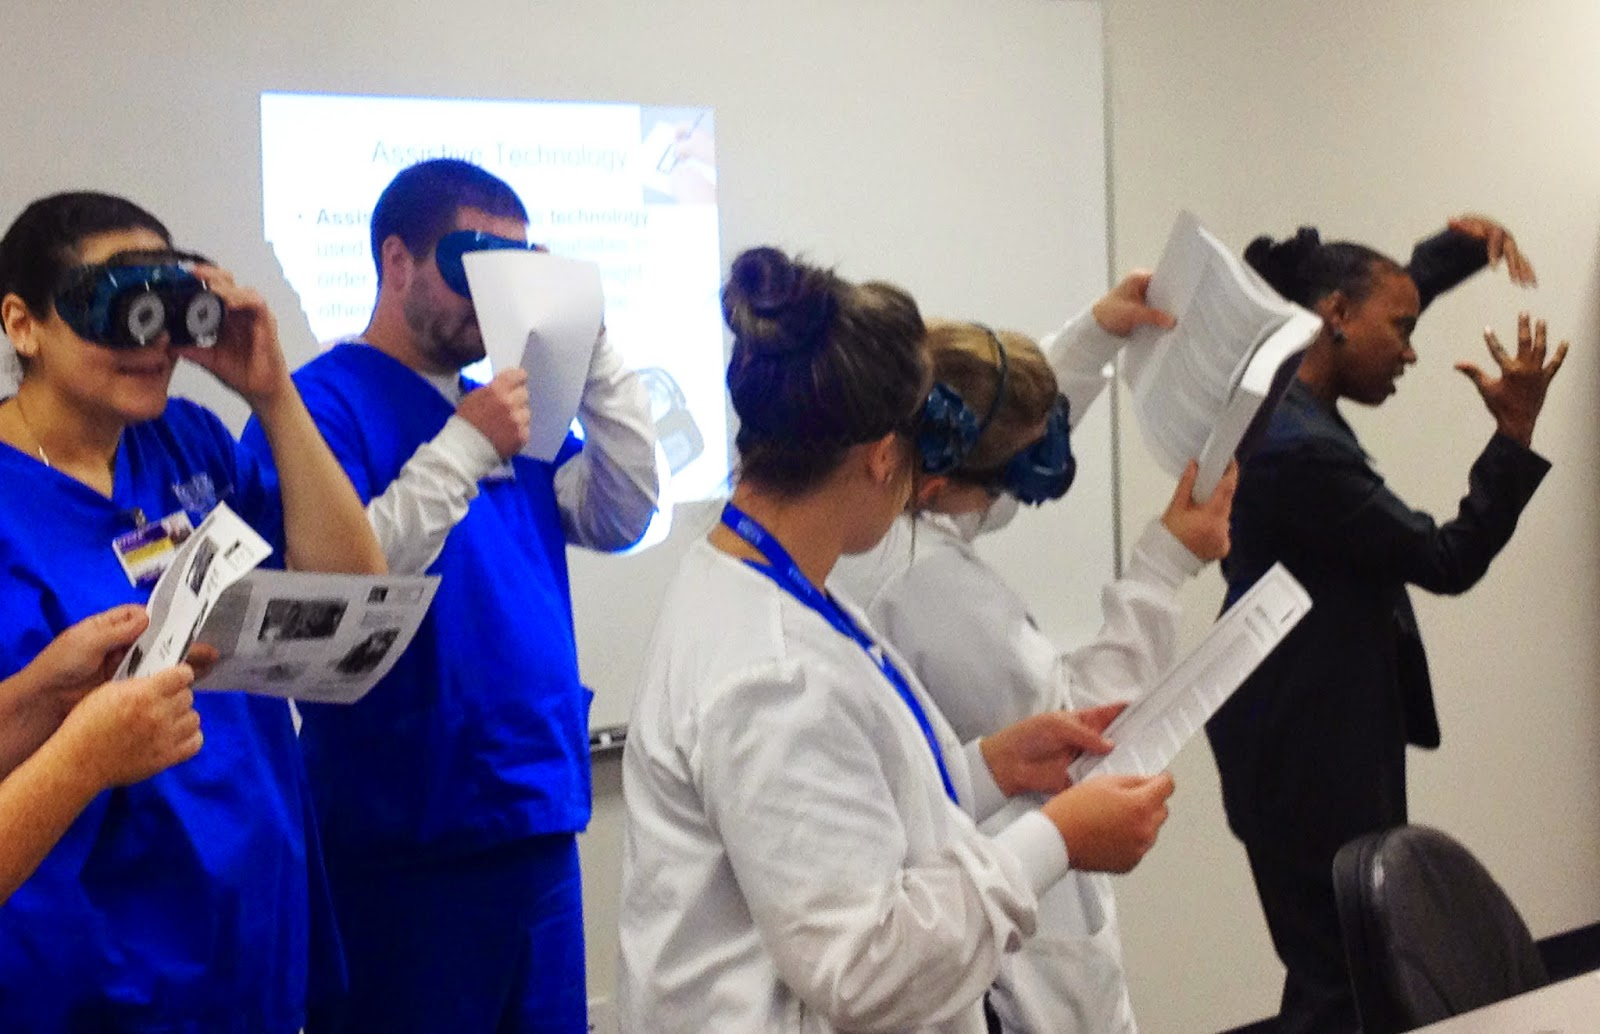 In a lecture room with a whiteboard in the background, Tiffany wearing a dark blazer, uses her hands to emphasize a talking point while OT students wearing blue scrubs try on different sight simulators over their eyes to simulate what it's like with different types of vision loss.